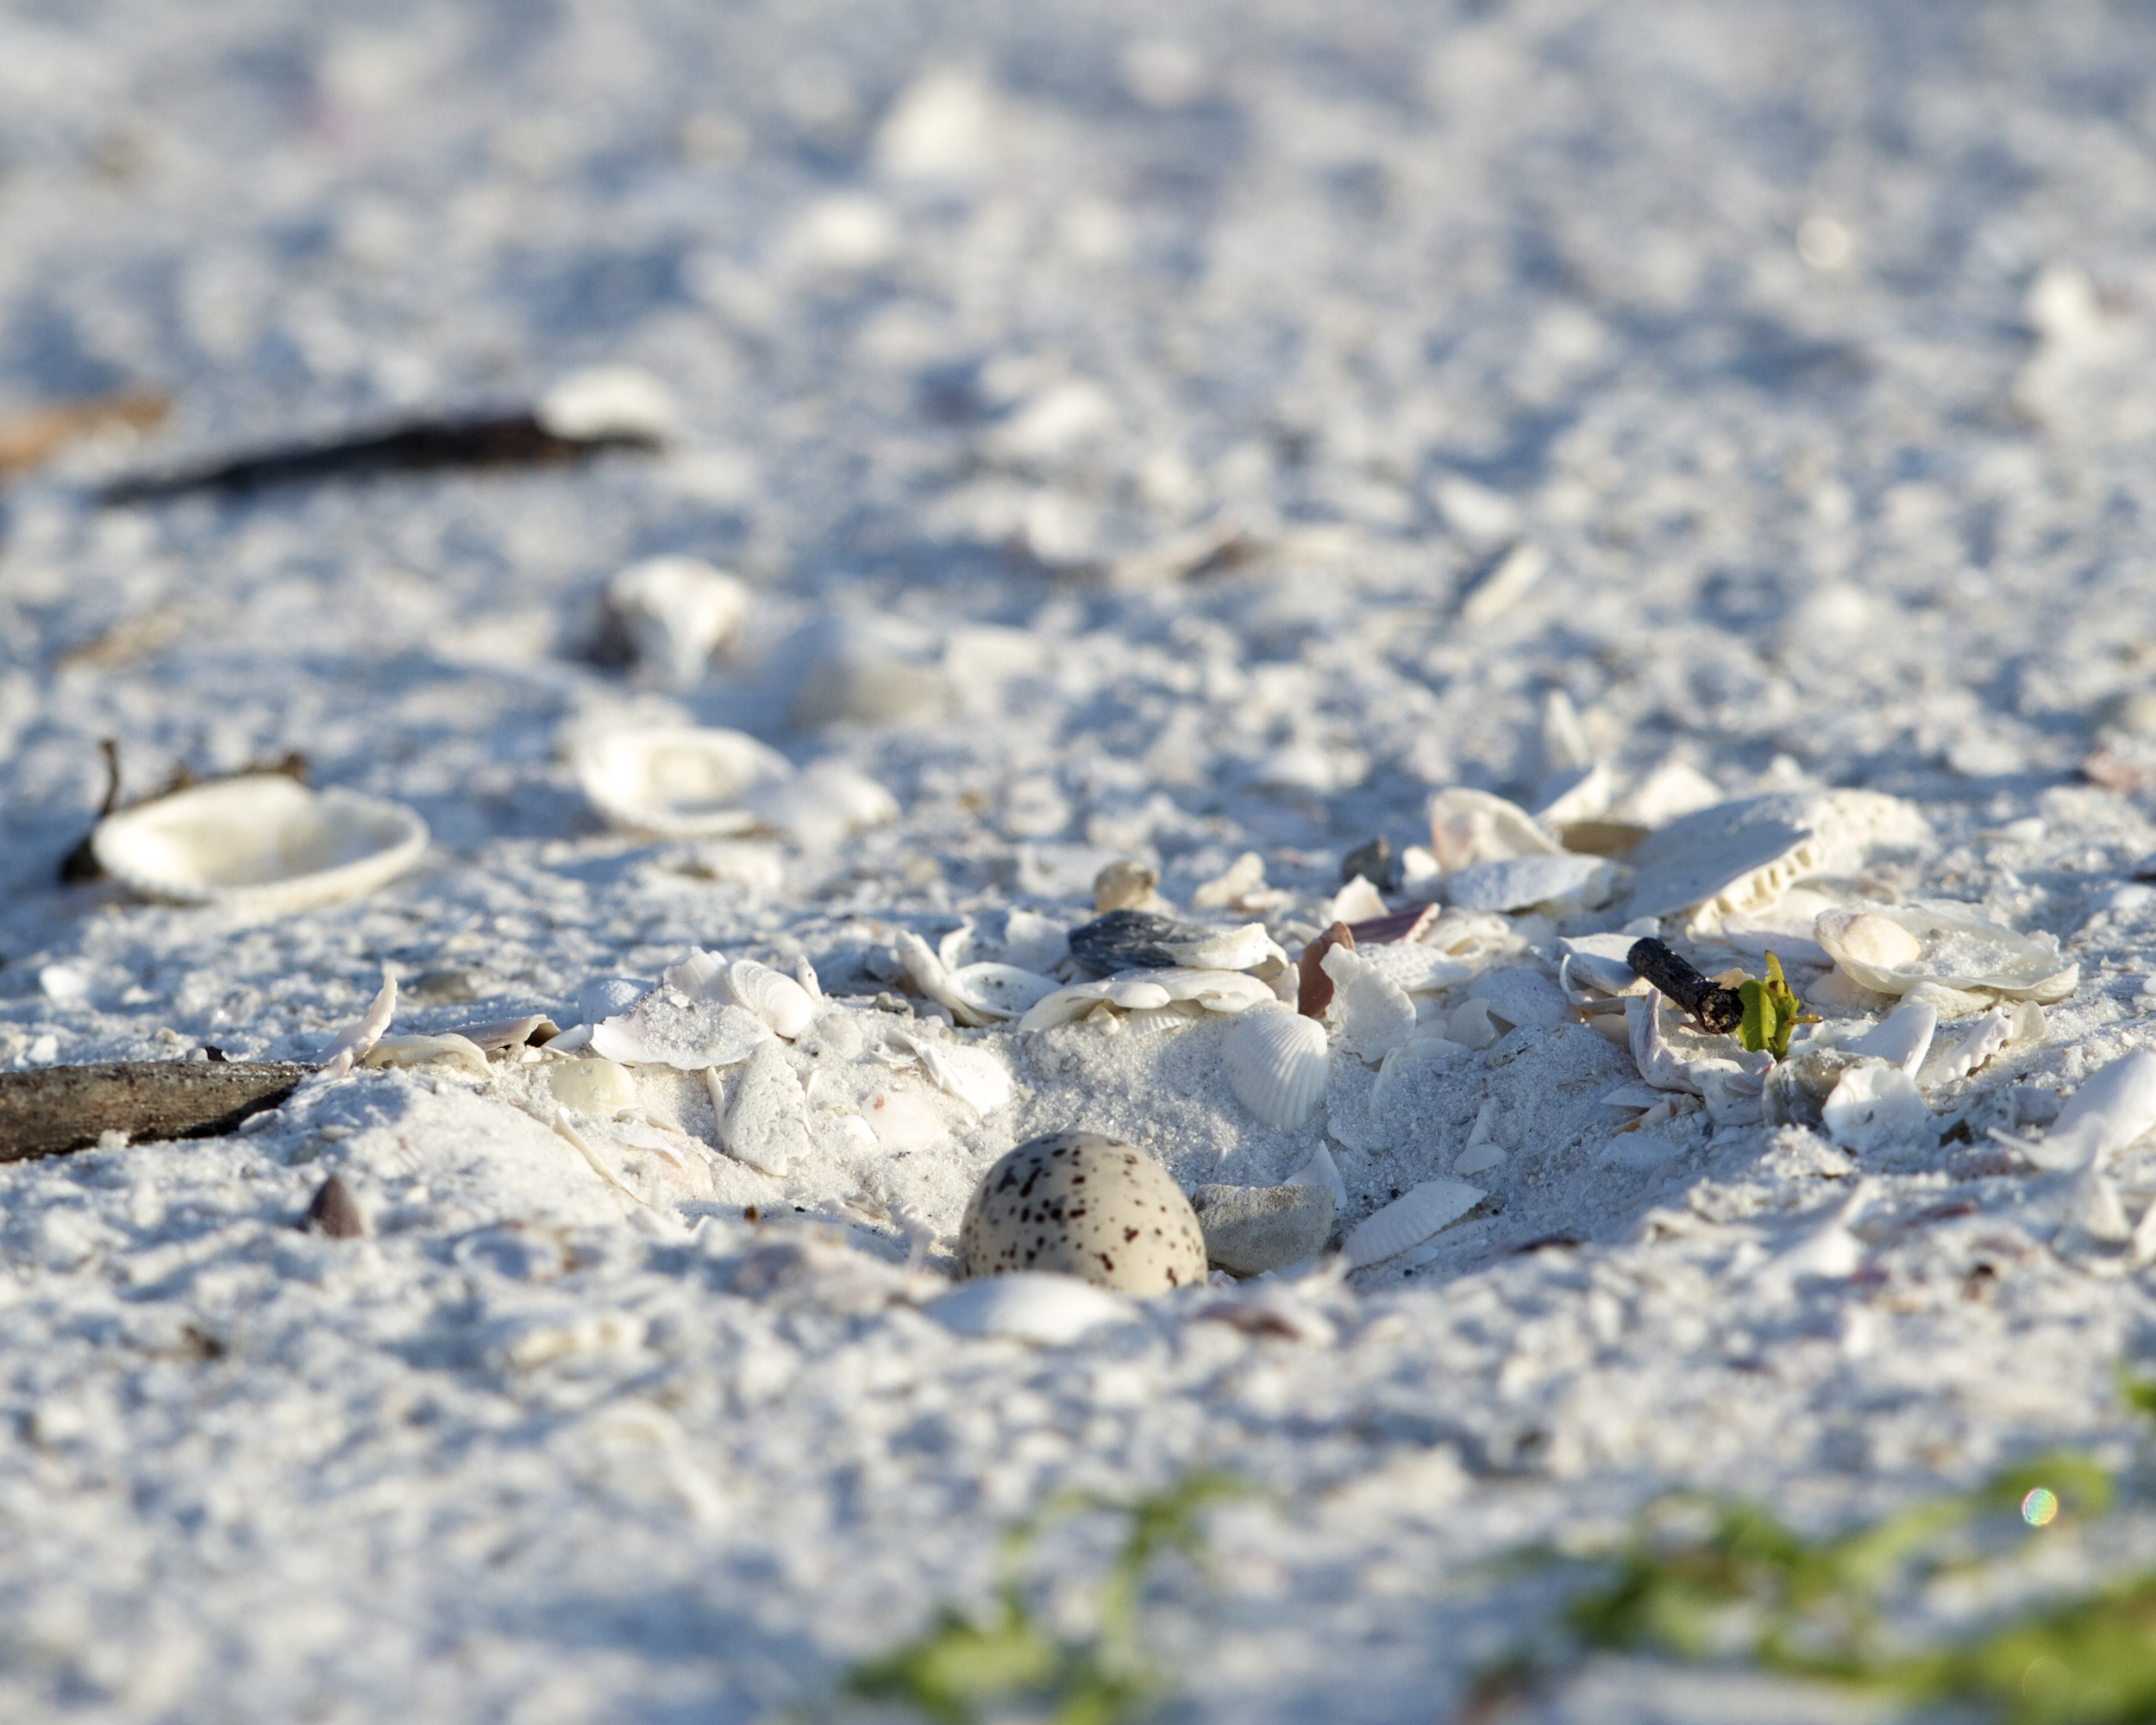 The lone egg of the Least Tern lies camouflaged in the shallow nest in the sand.